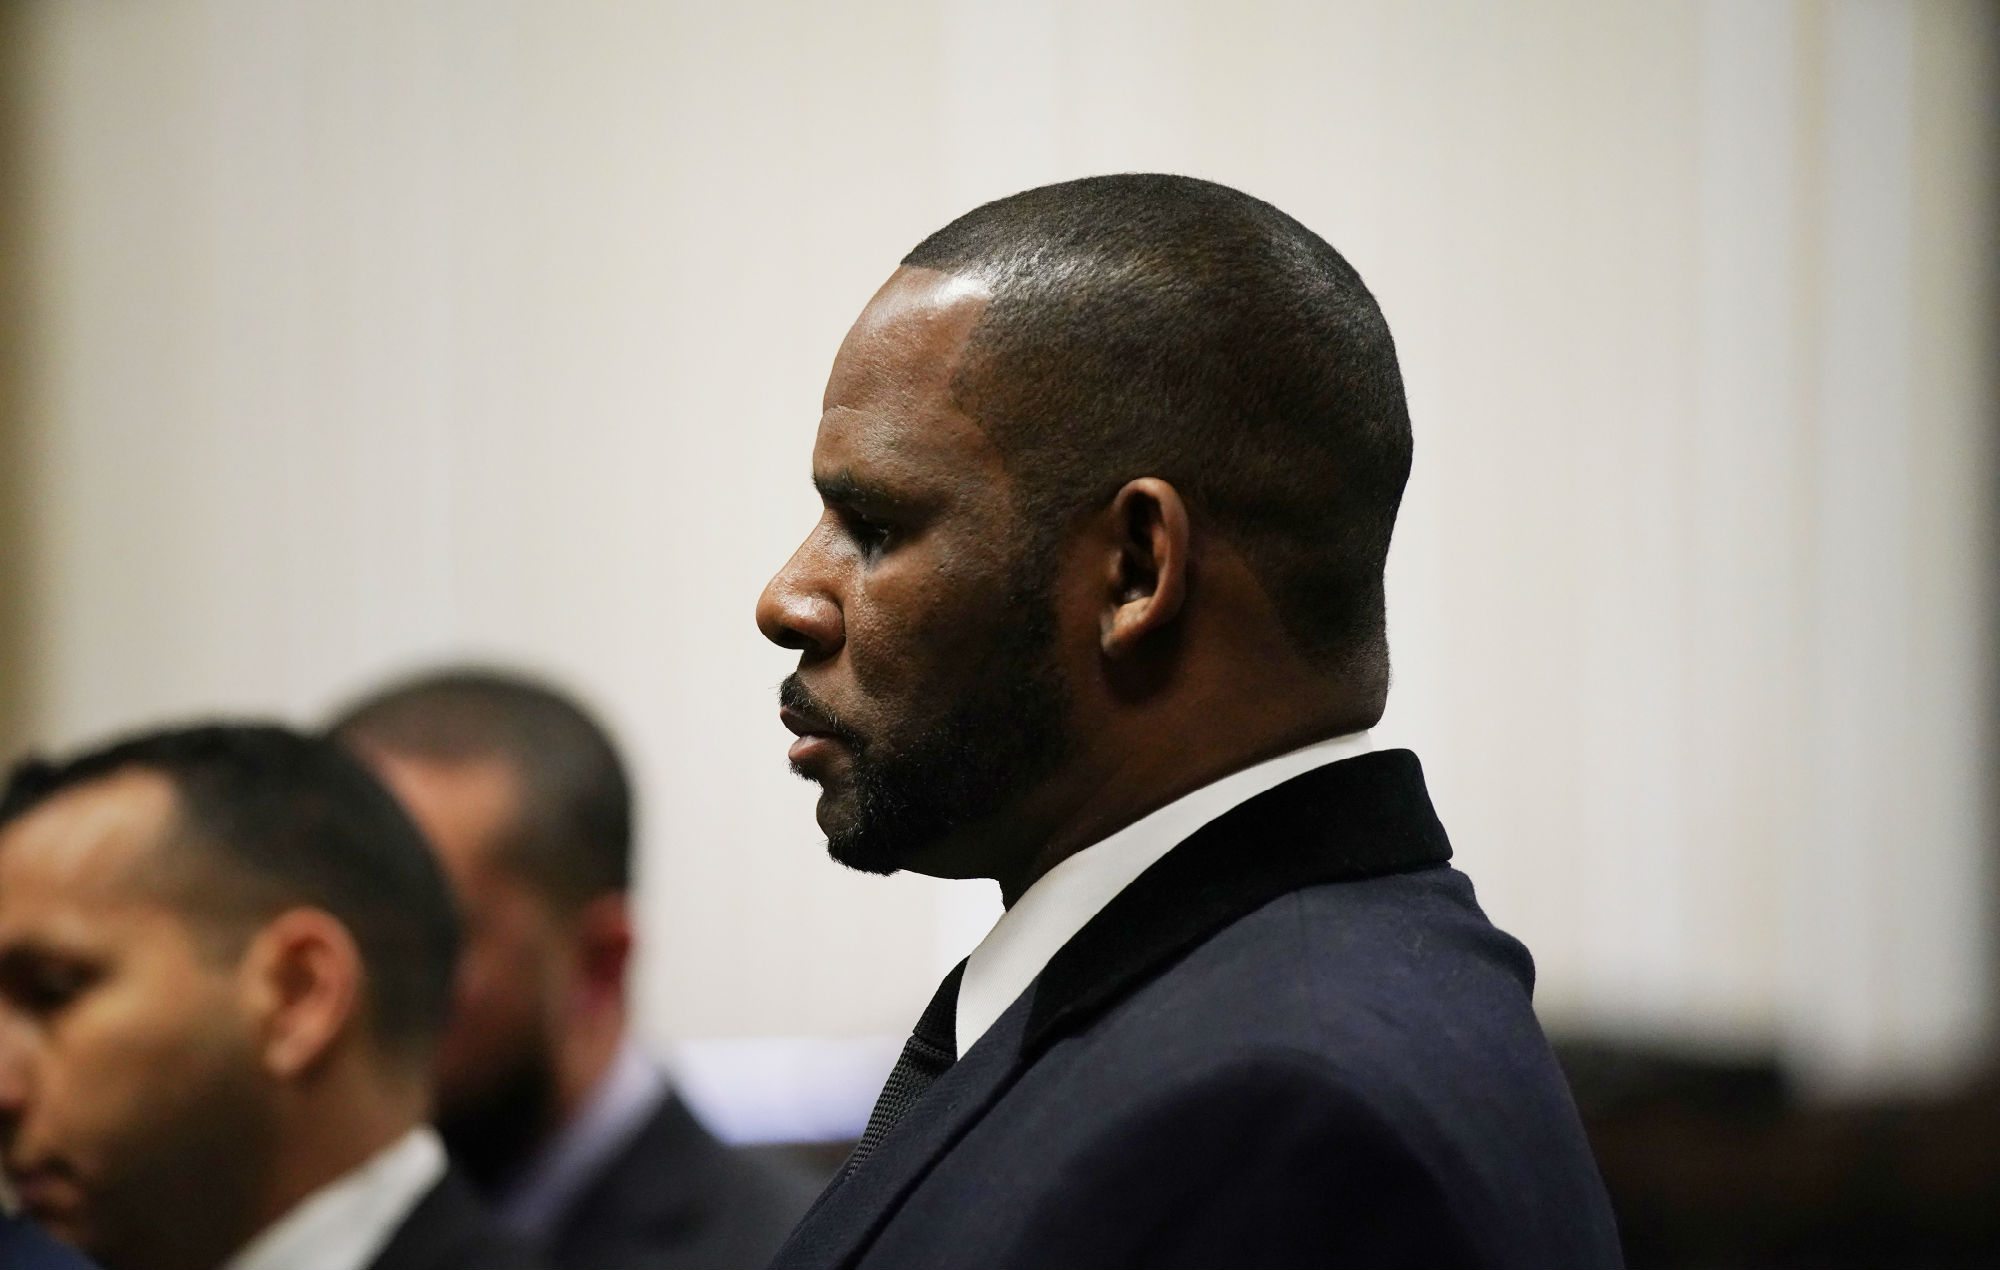 R. Kelly is asking to be released from jail again over fears he'll contract coronavirus - EpicNews